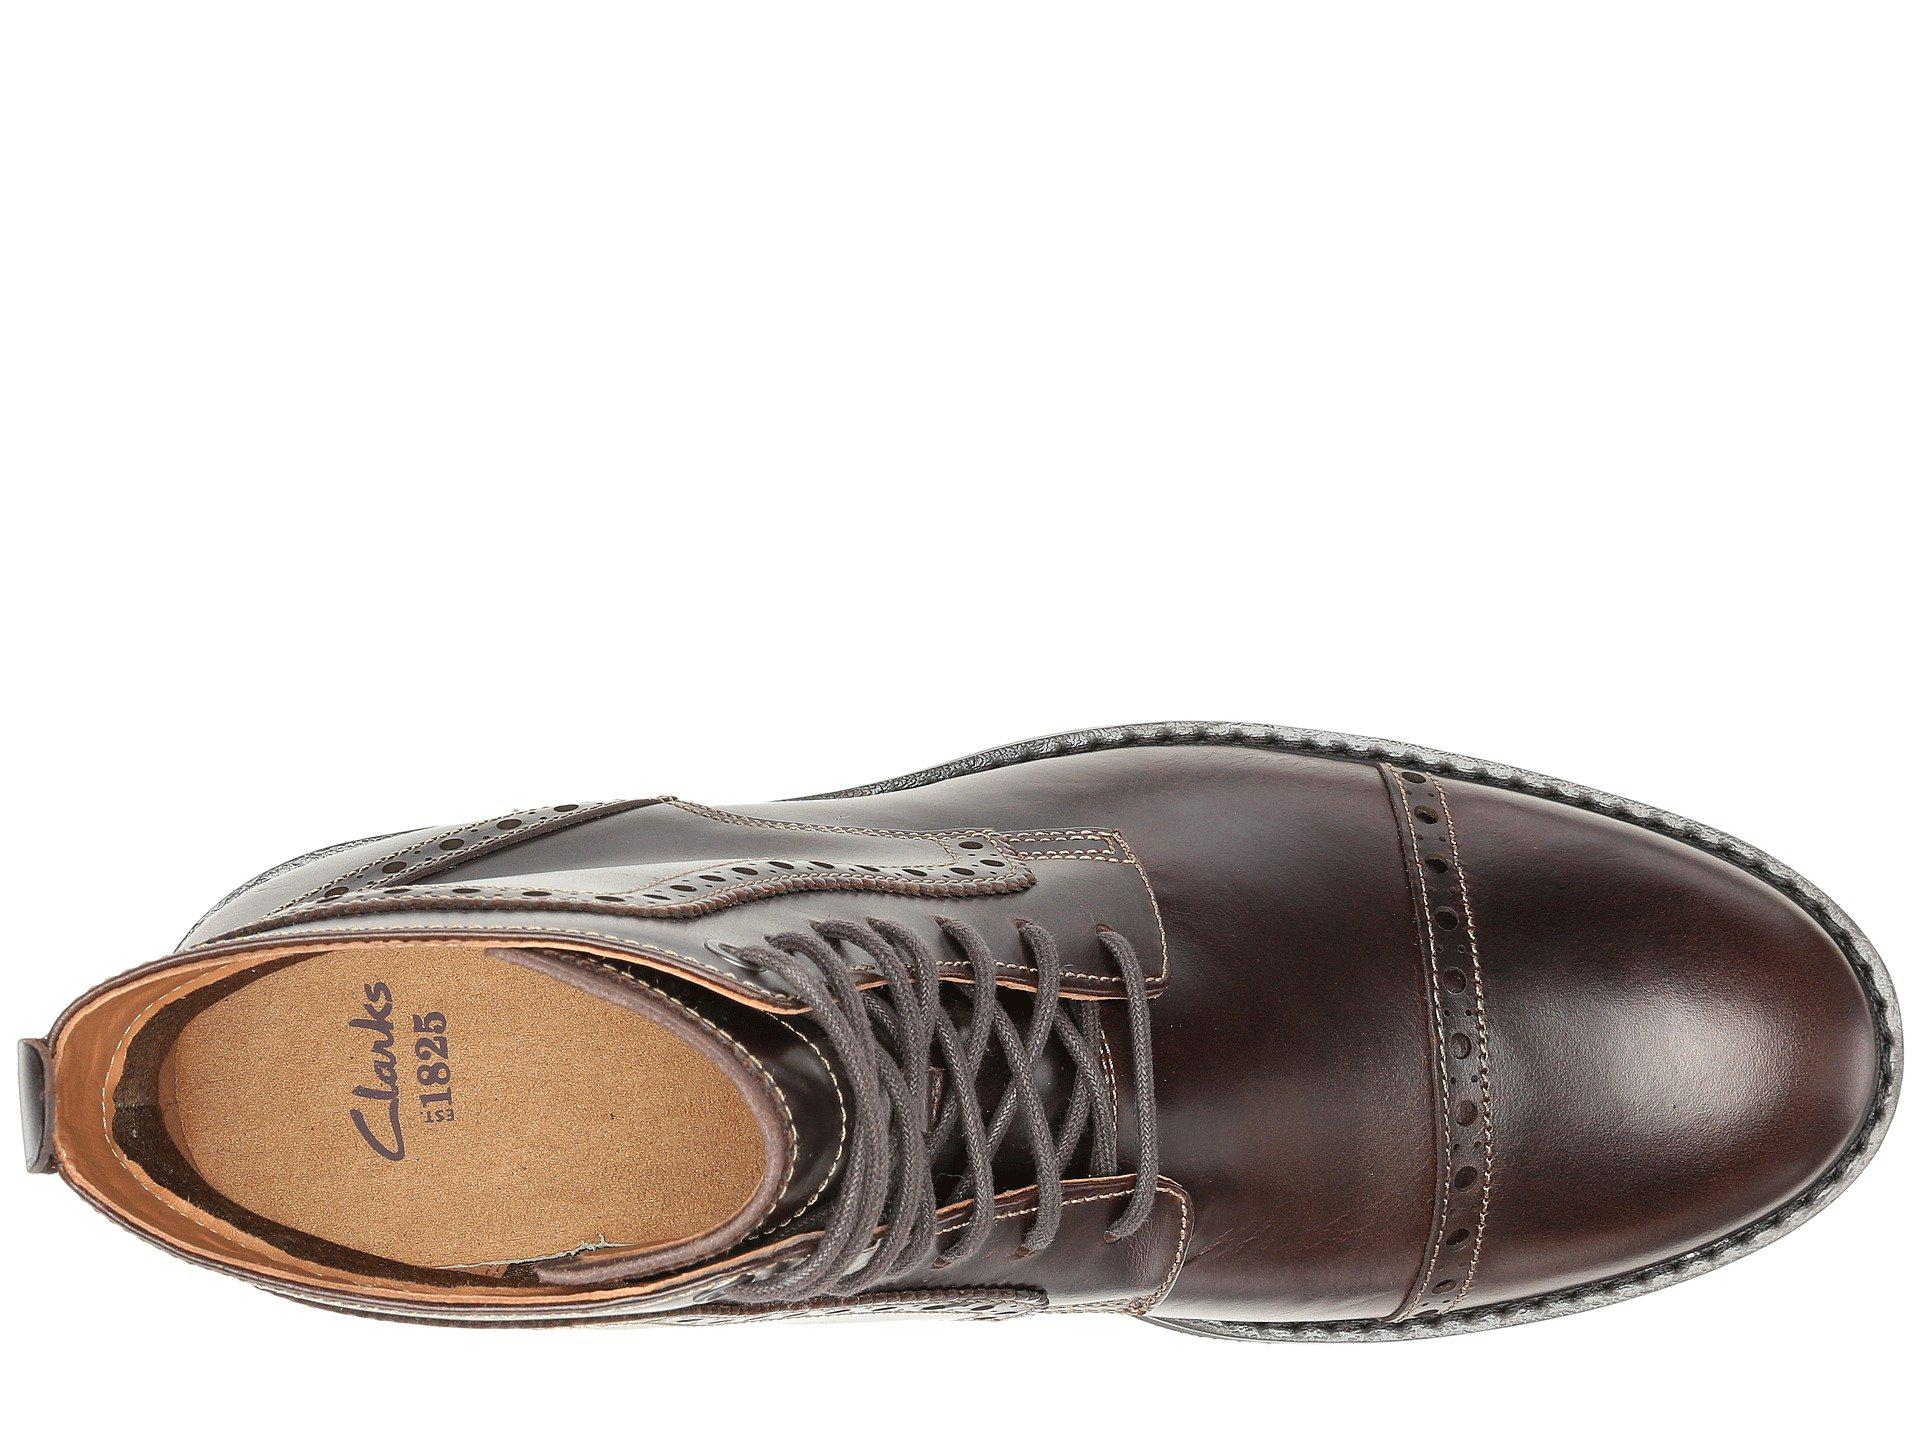 69ae7eb0508a3 Lyst - Clarks Montacute Cap in Brown for Men - Save 45%